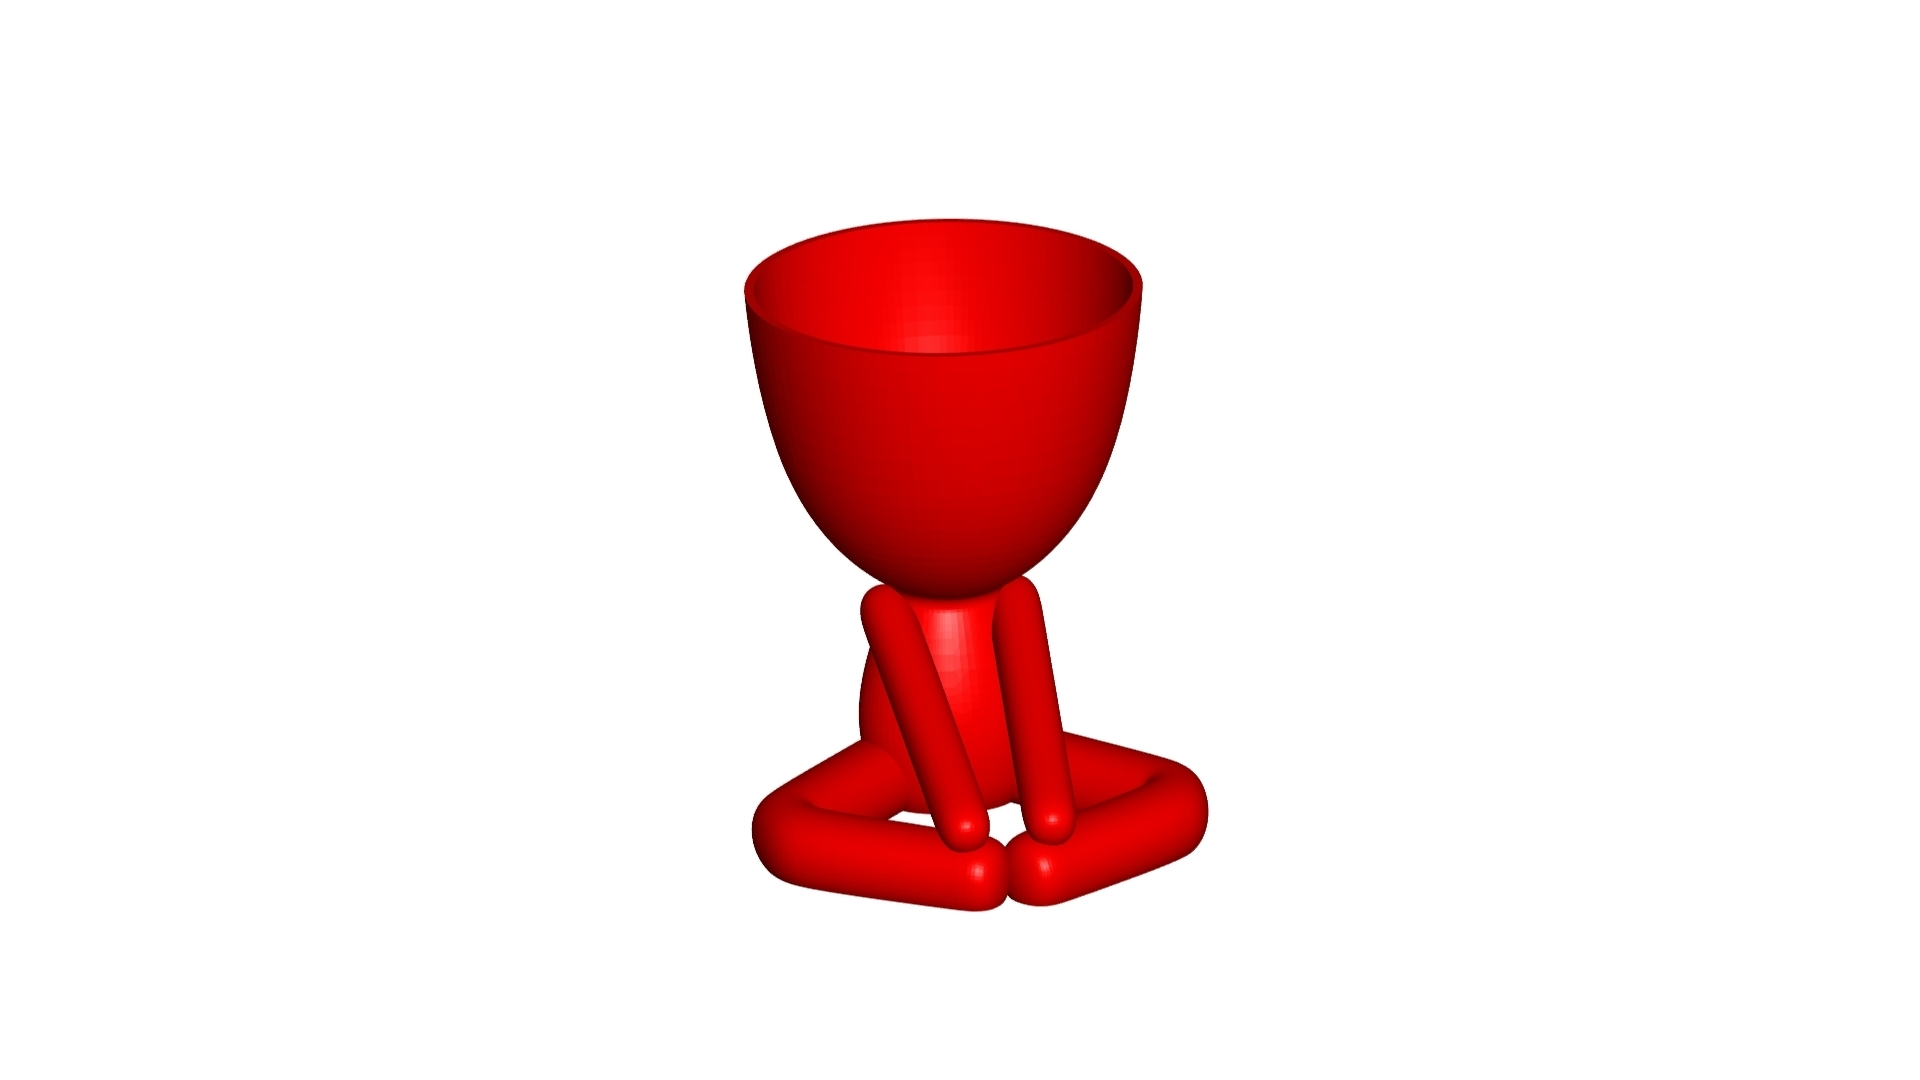 Vaso_12_Rojo_1.jpg Download free STL file YOGA ESTIRANDO JARRÓN MACETA ROBERT 12 -  YOGA STRETCHING VASE FLOWERPOT ROBERT 12 • Template to 3D print, PRODUSTL56